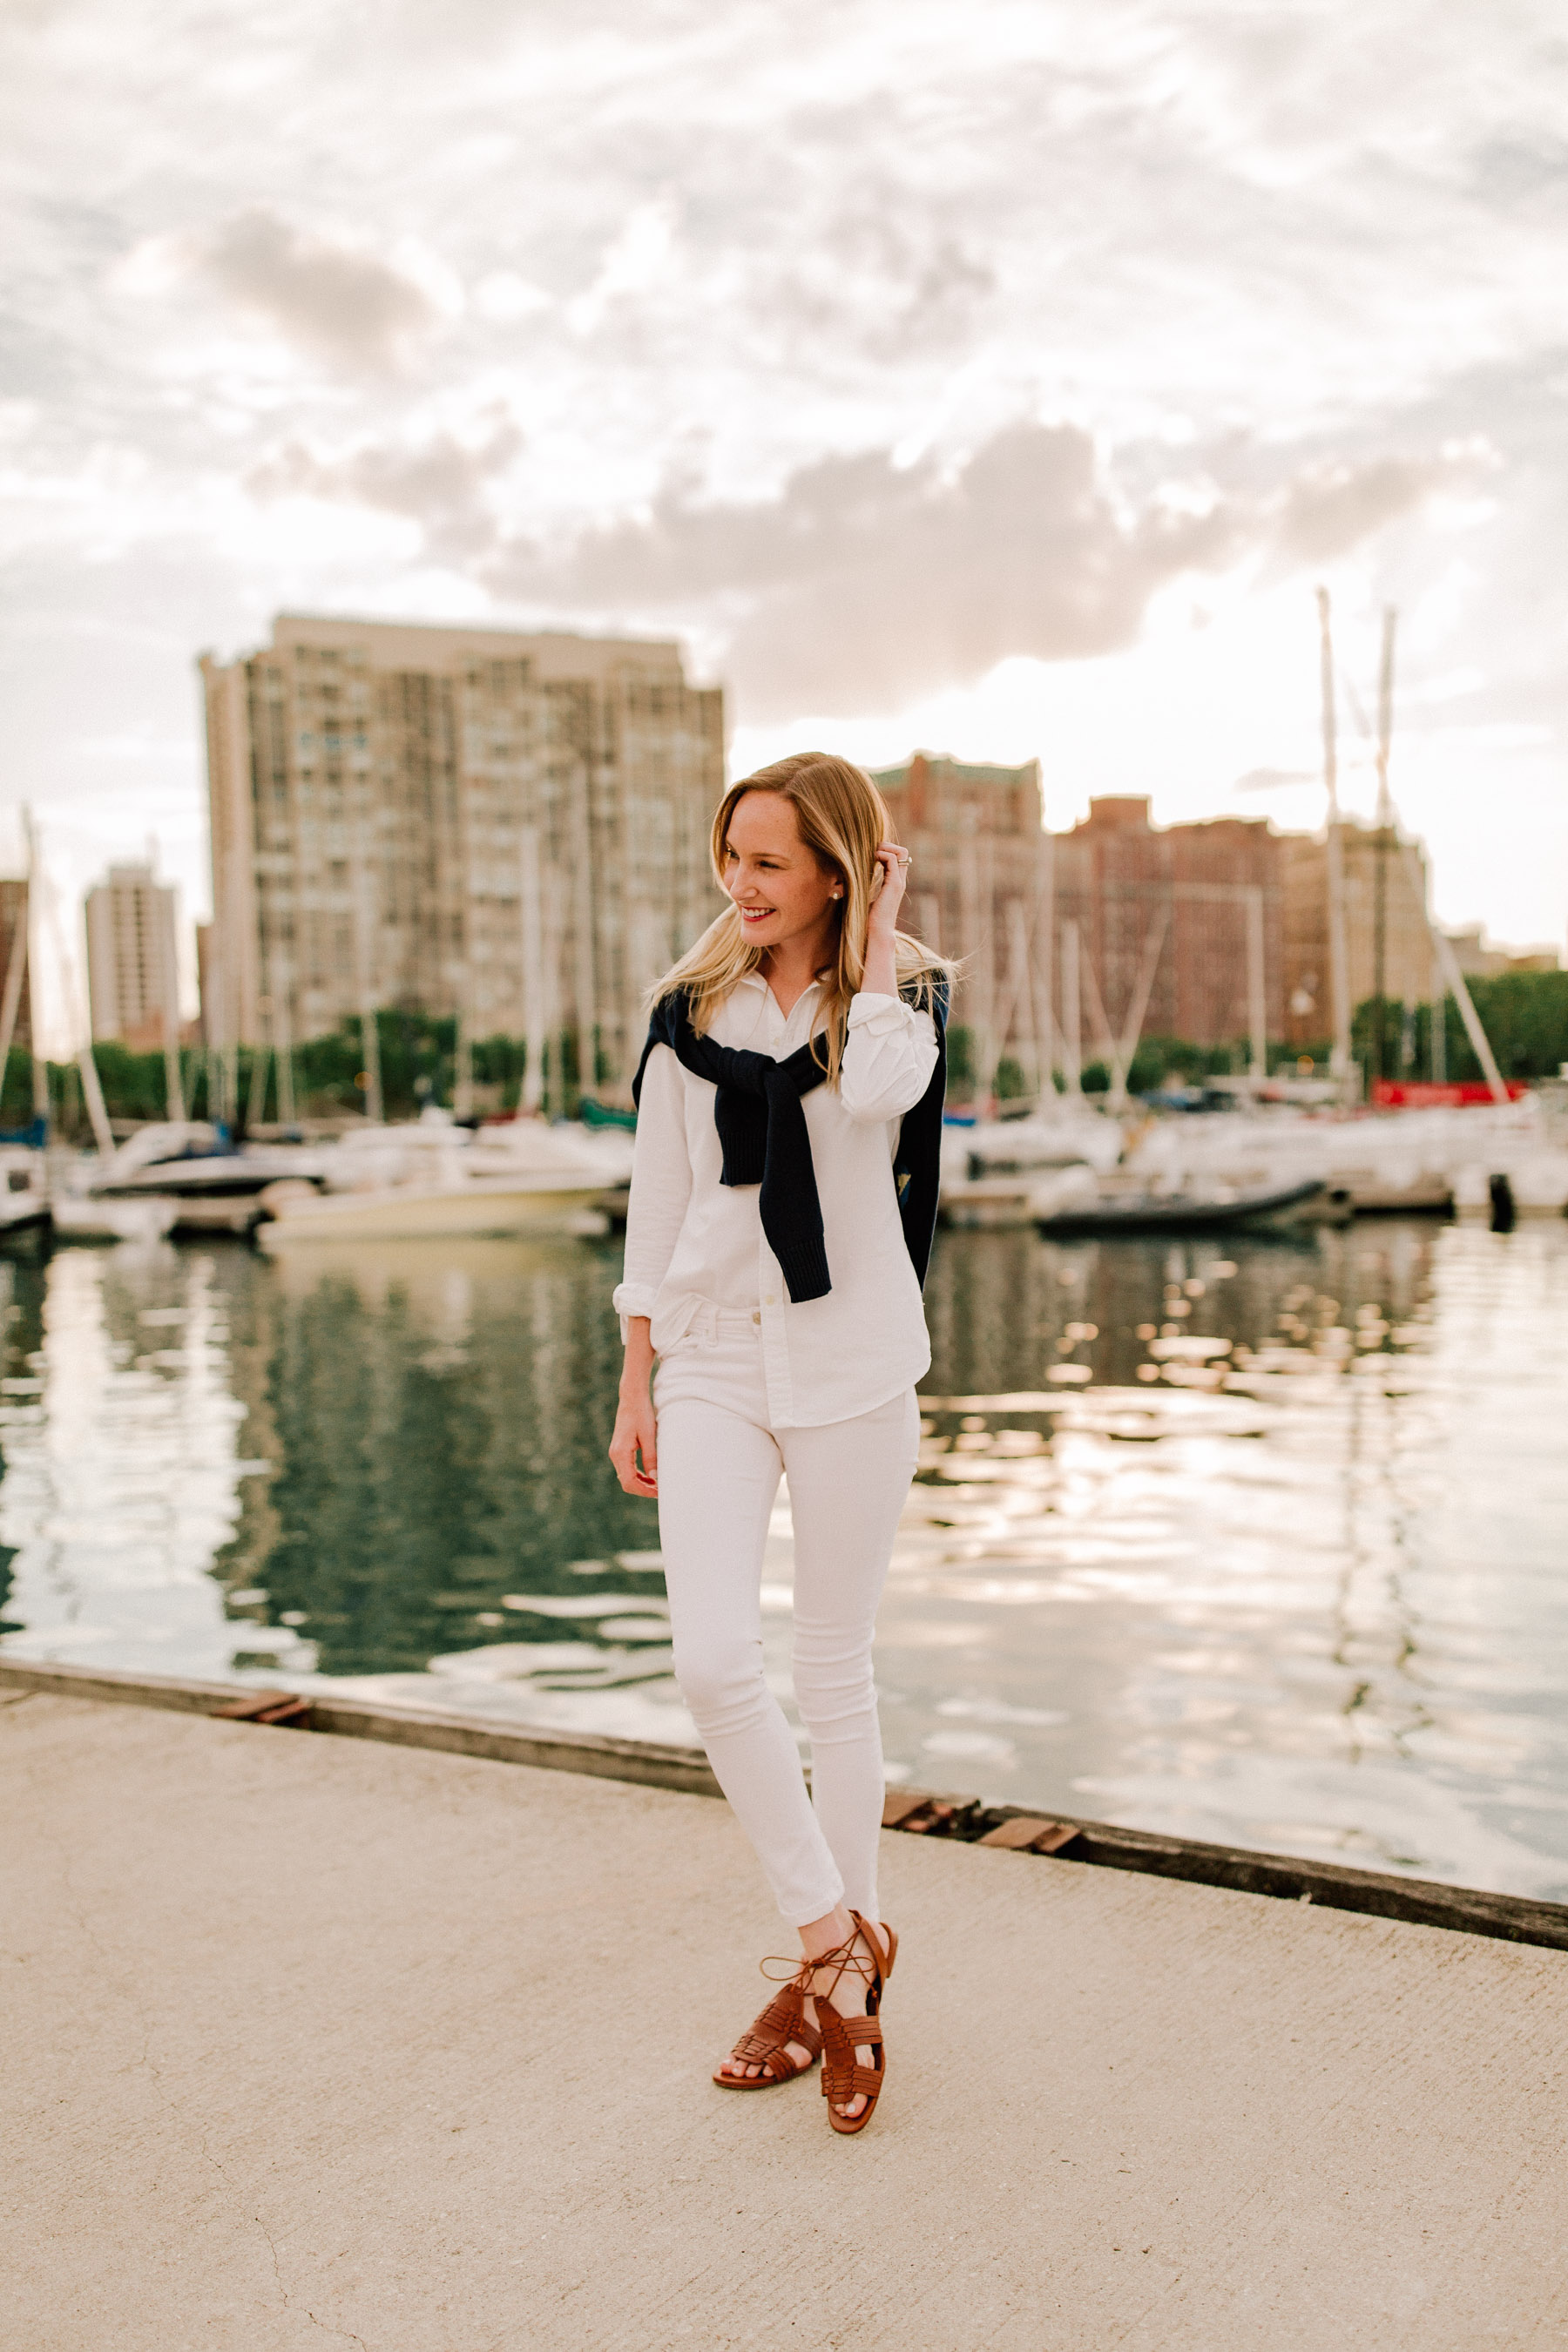 Boat Cotton Rollneck Sweater / Knit Cotton Oxford Shirt /Leather Vachetta Sandals / Leather Lennox Bag - Kelly in the city